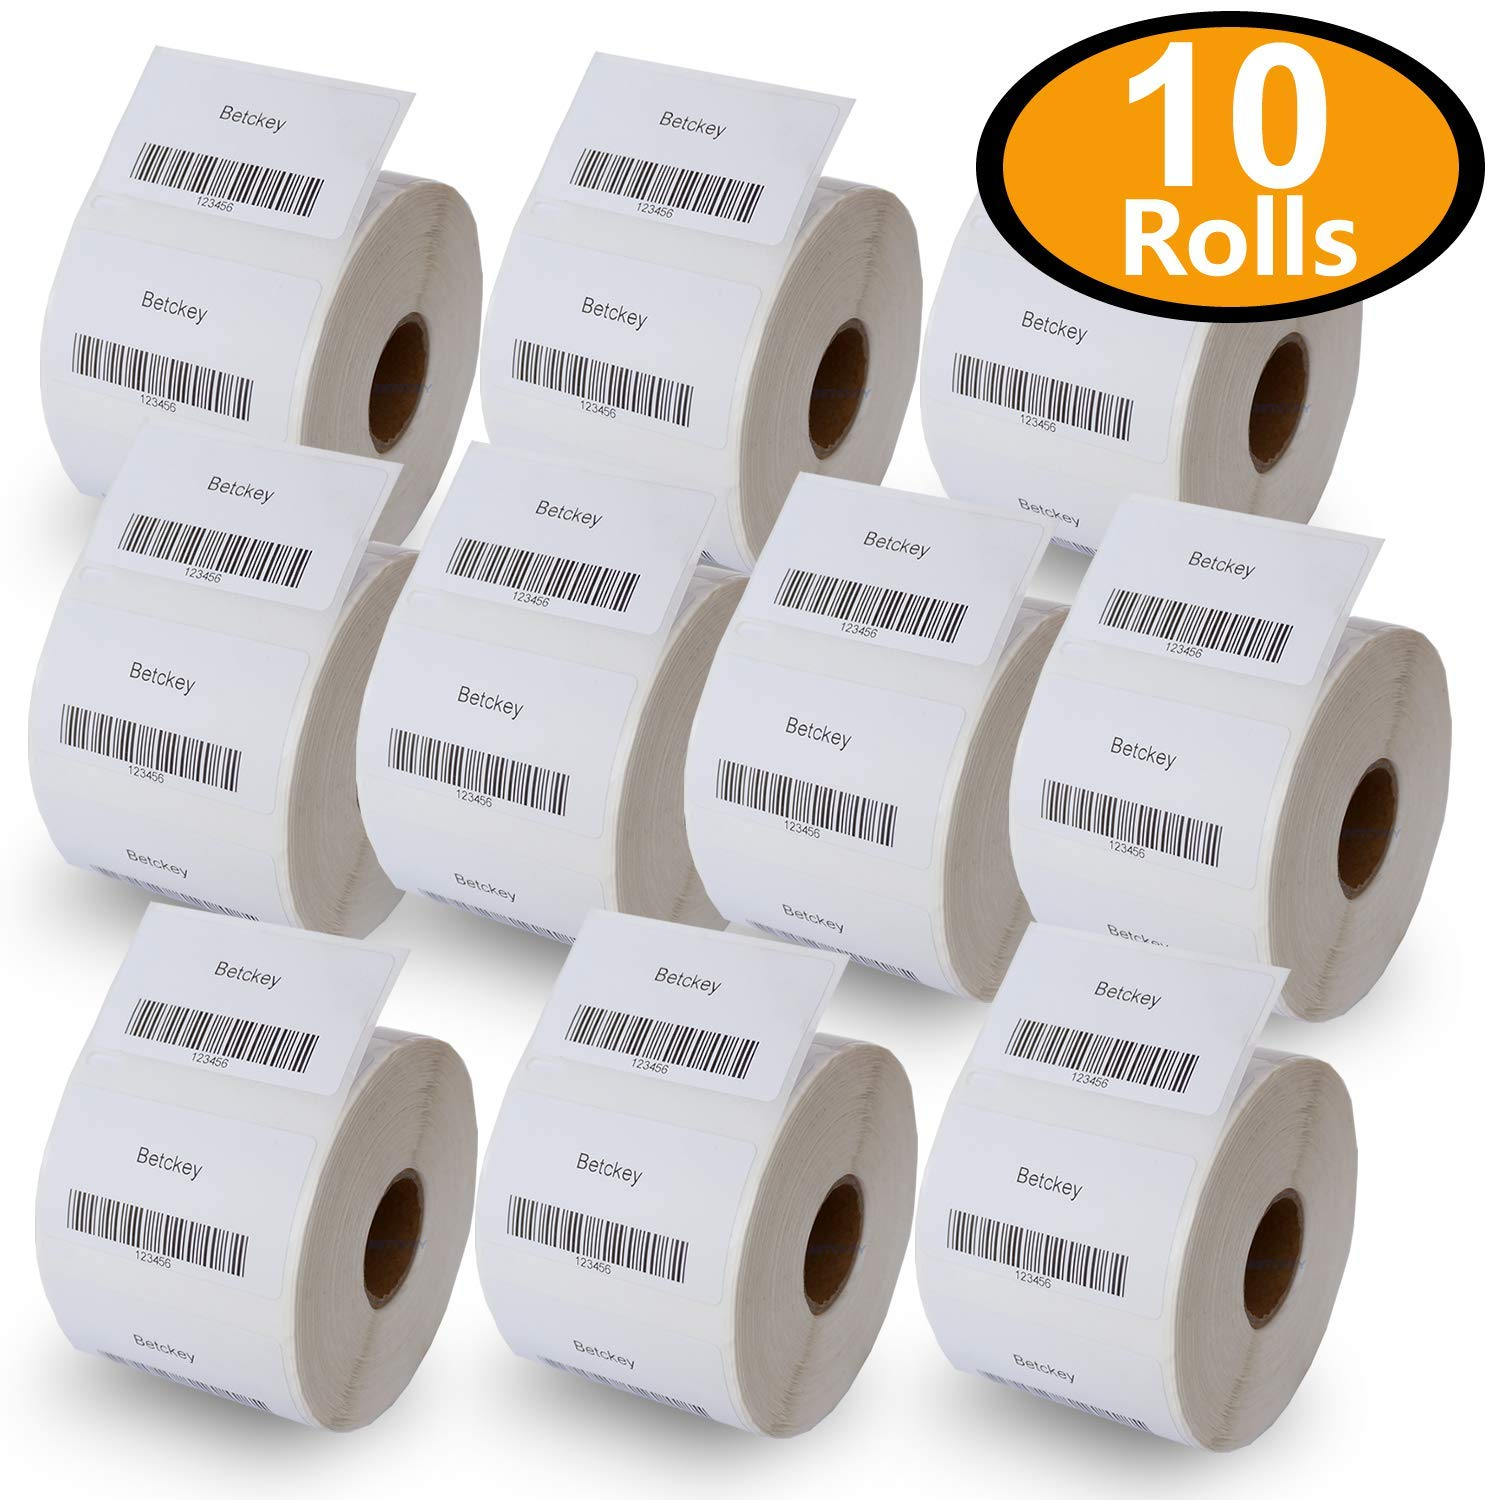 10 Rolls DYMO 30334 Compatible 2-1/4'' x 1-1/4''(57mm x 32mm) Medium Multipurpose/Barcode/FNSKU/UPC/FBA Labels,Strong Permanent Adhesive, Perforated